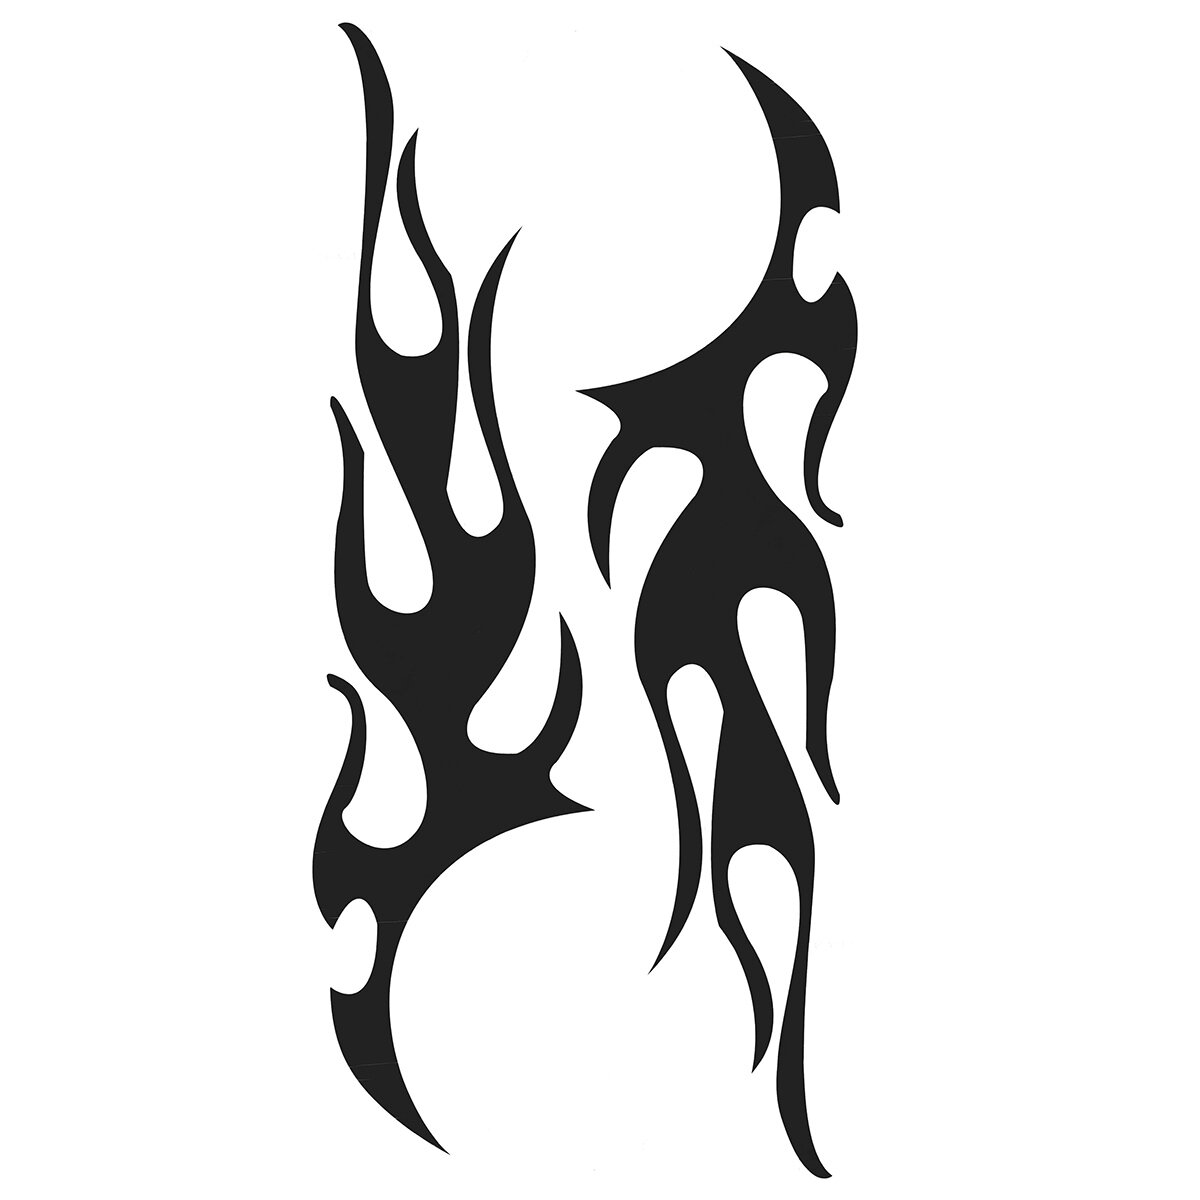 2pcs Flame Stickers Graphic Decal Large Flaming Body